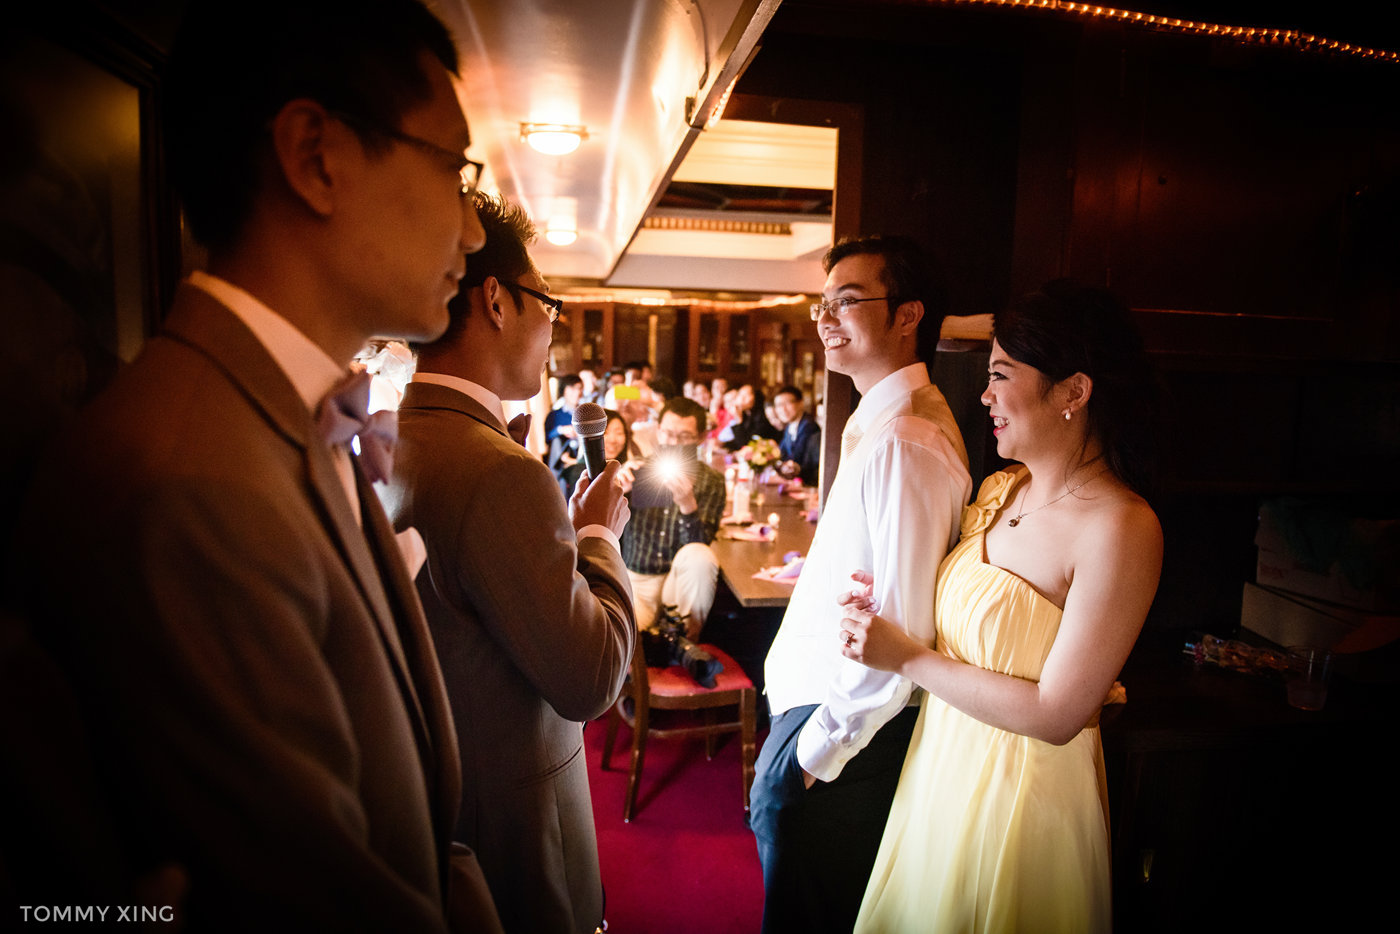 Seattle Wedding and pre wedding Los Angeles Tommy Xing Photography 西雅图洛杉矶旧金山婚礼婚纱照摄影师 174.jpg